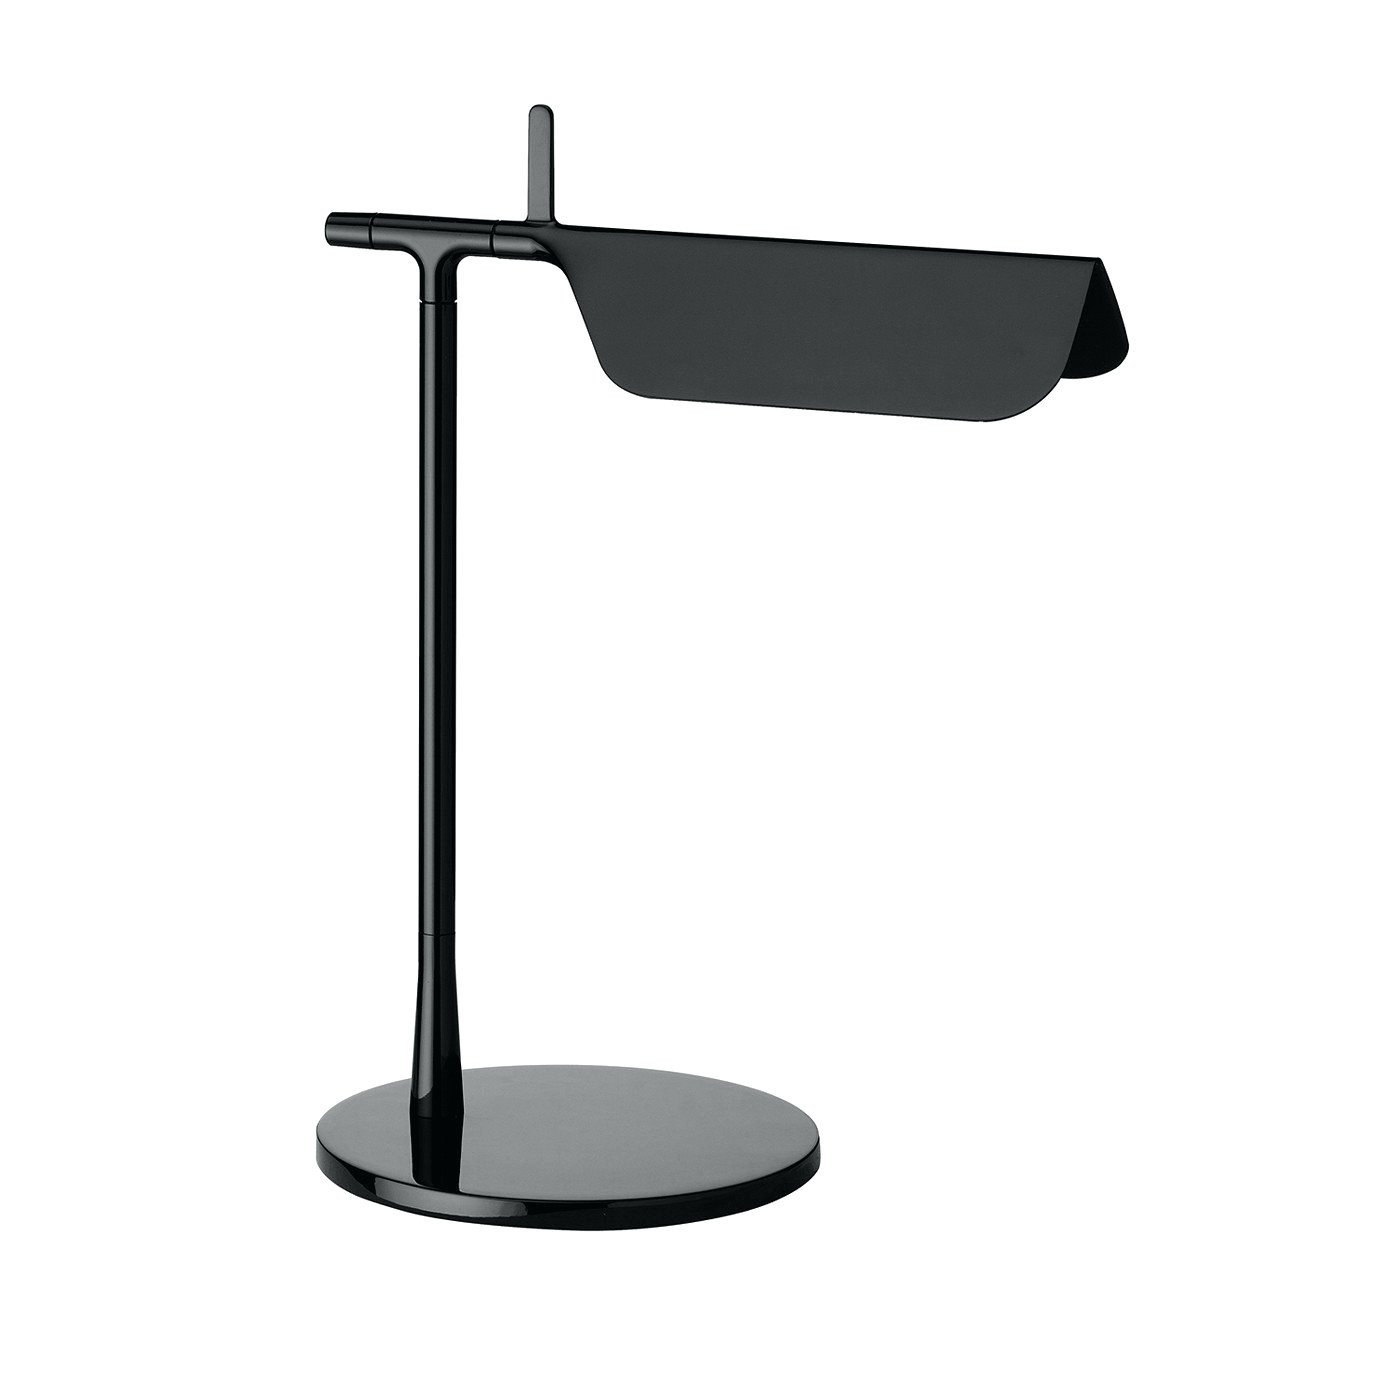 Best ideas about Desk Lamp Home Depot . Save or Pin Desk Lamps Home Depot Now.